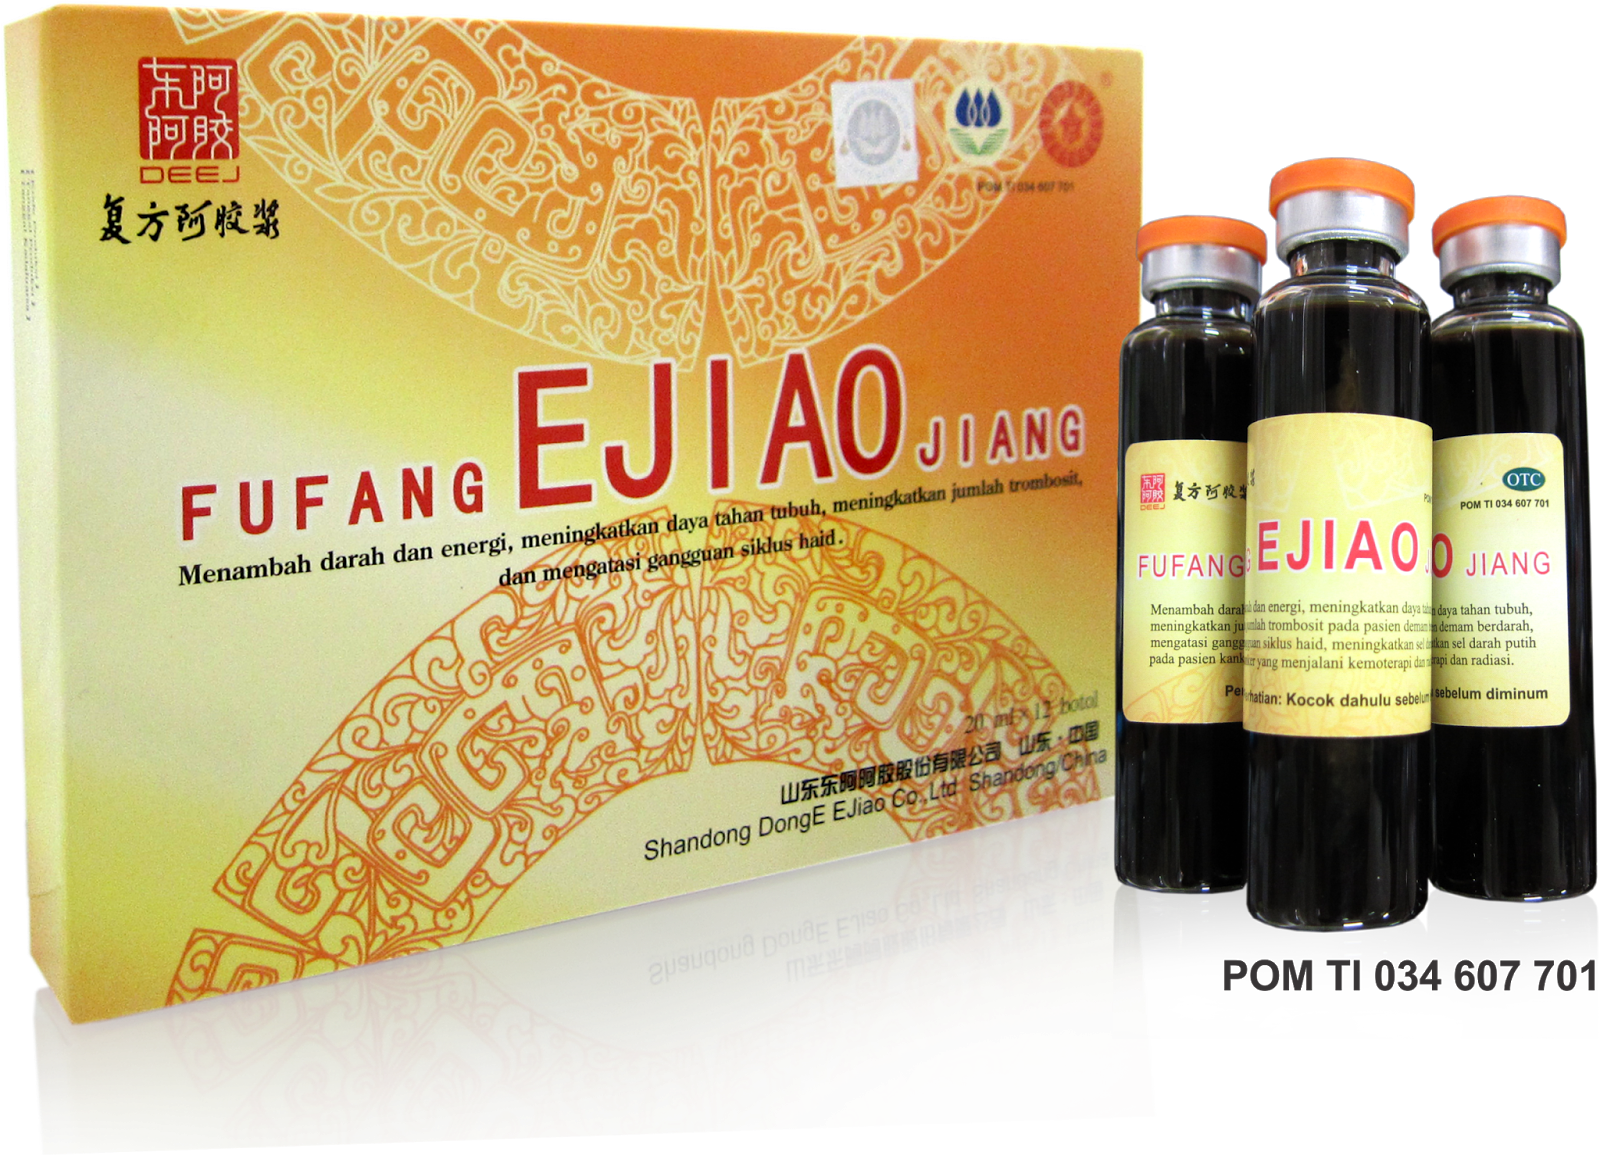 Image result for fufang ejiao